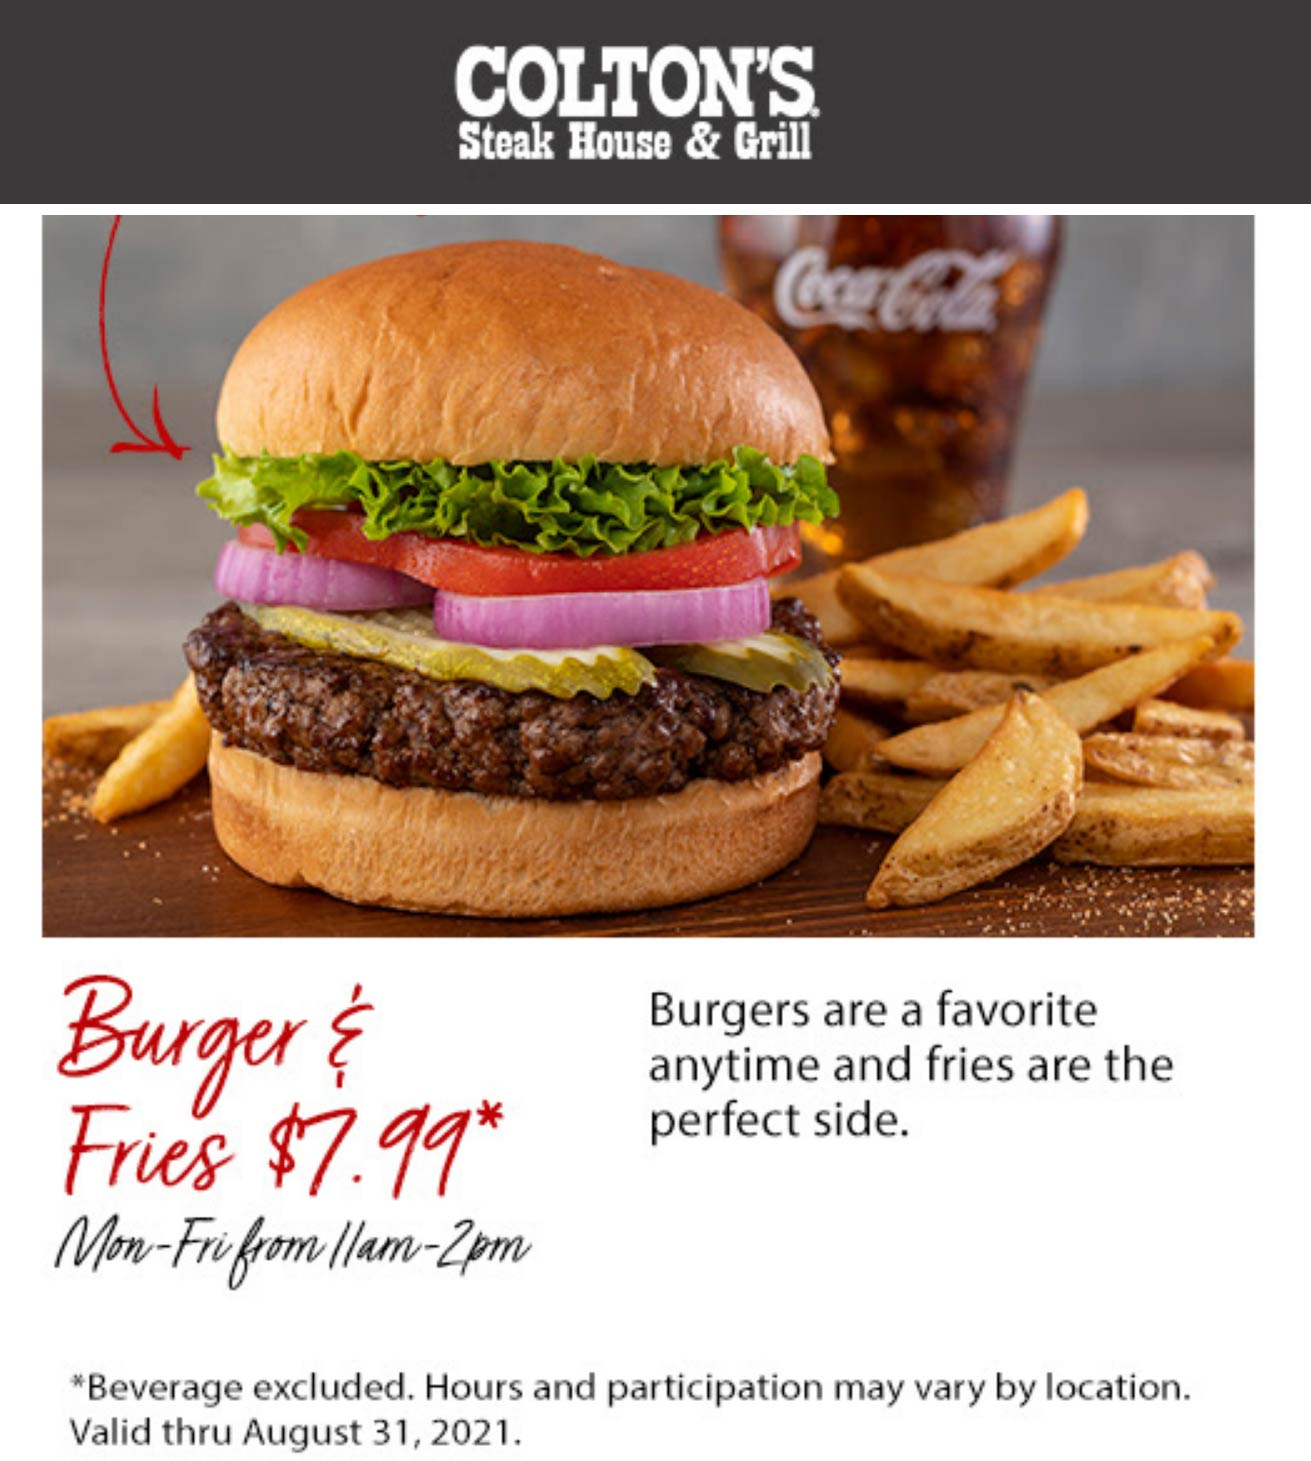 Coltons Steak House restaurants Coupon  $8 cheeseburger + fries weekdays at Coltons Steak House & Grill #coltonssteakhouse